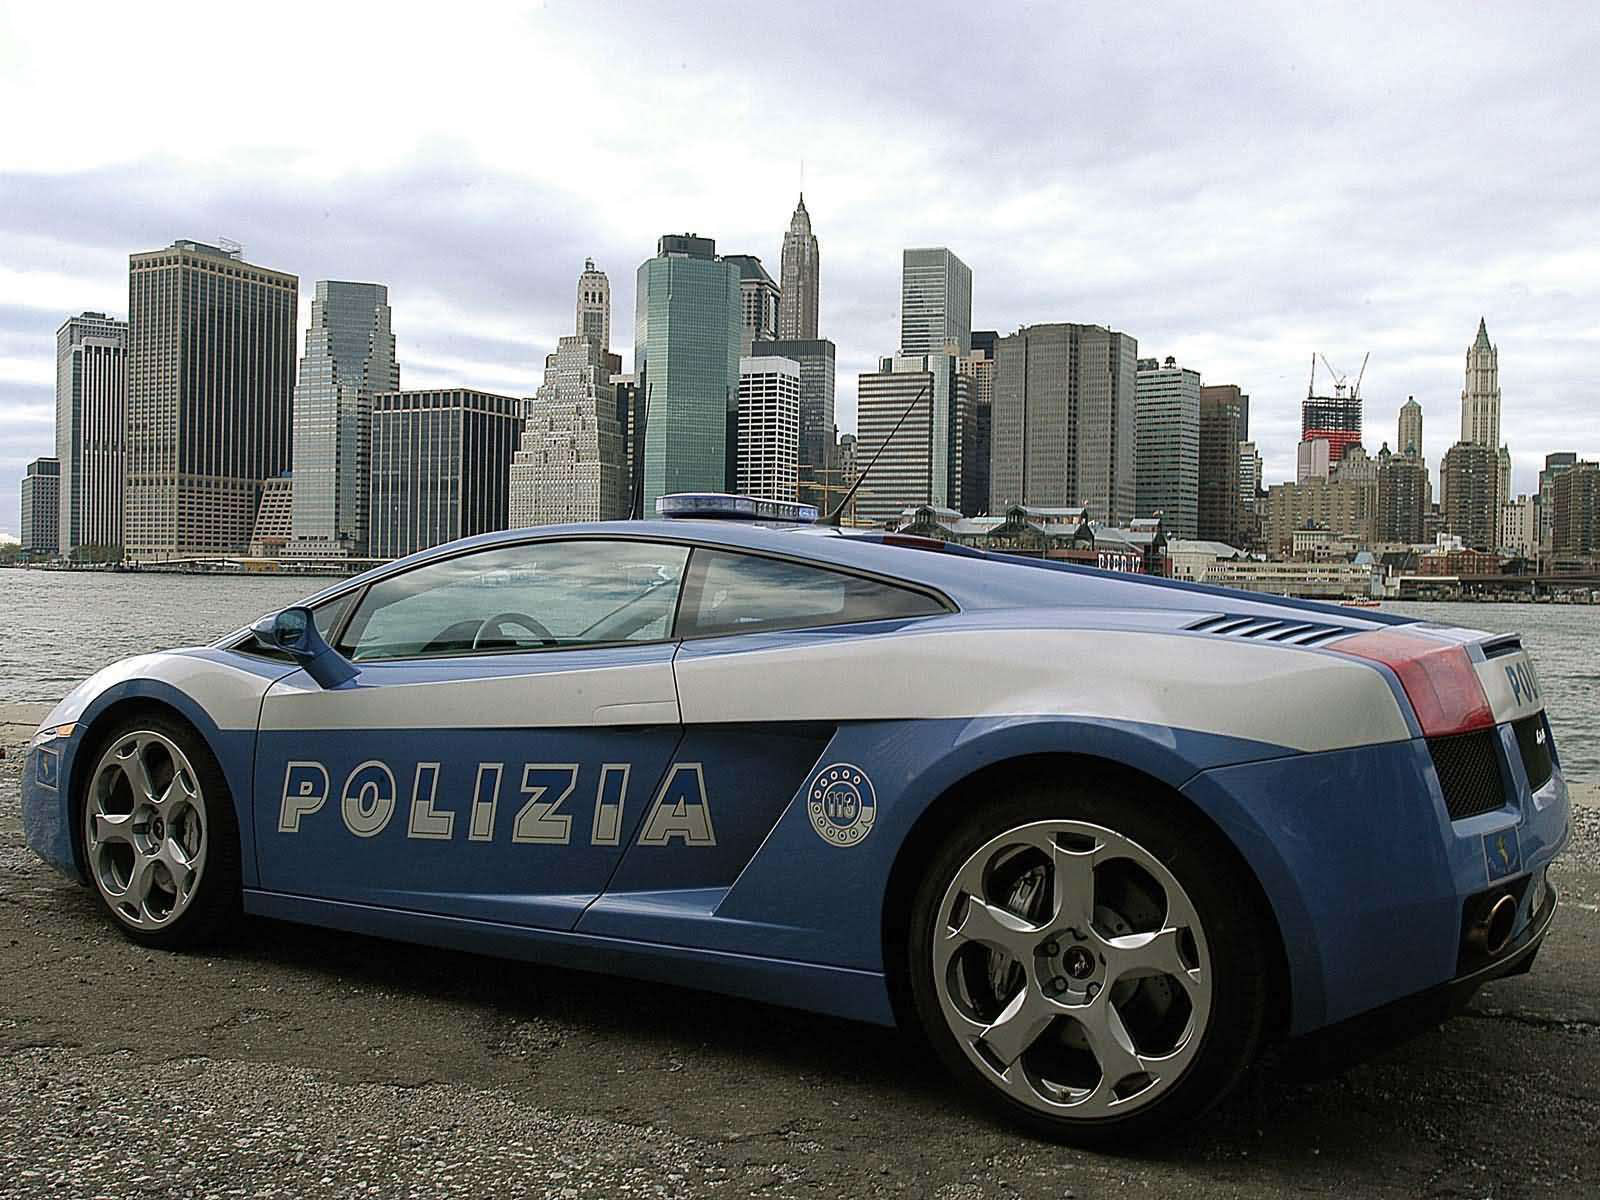 2019 Lamborghini Gallardo Police Car photo - 2